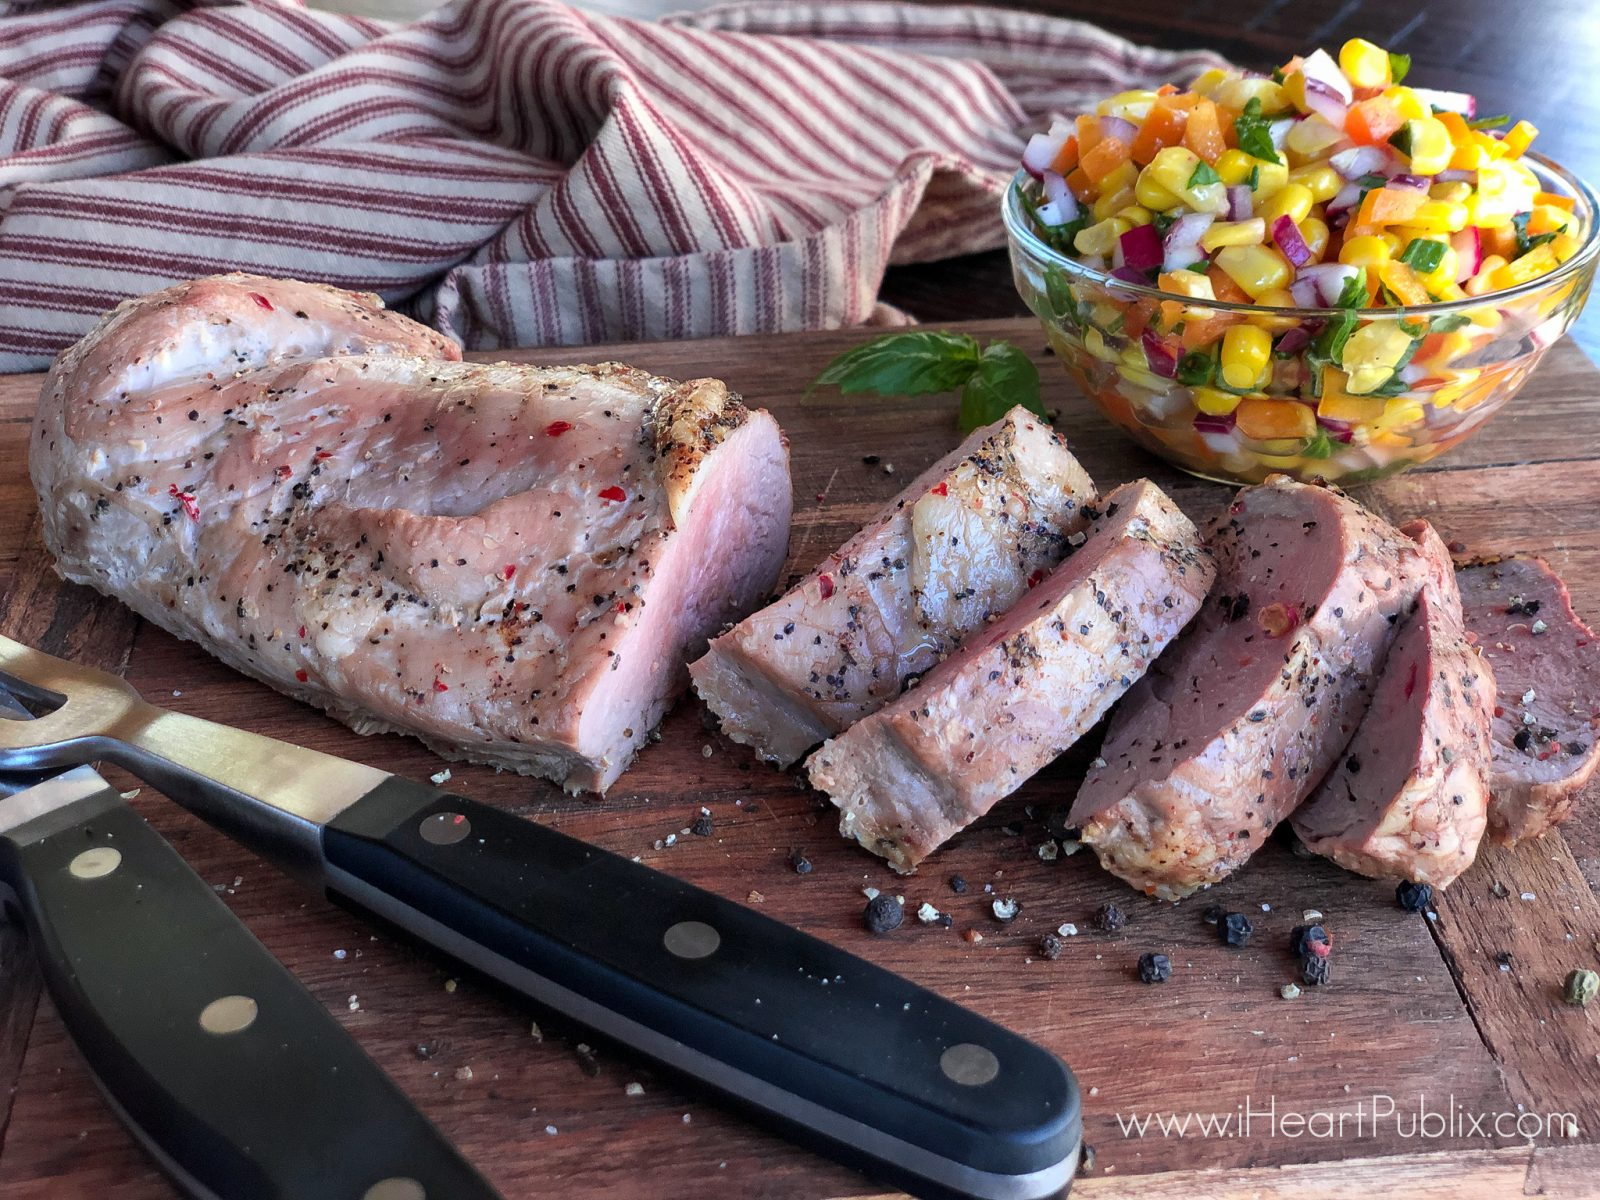 Smithfield Marinated Fresh Pork Is BOGO At Publix With A Digital Coupon For Even MORE Savings! on I Heart Publix